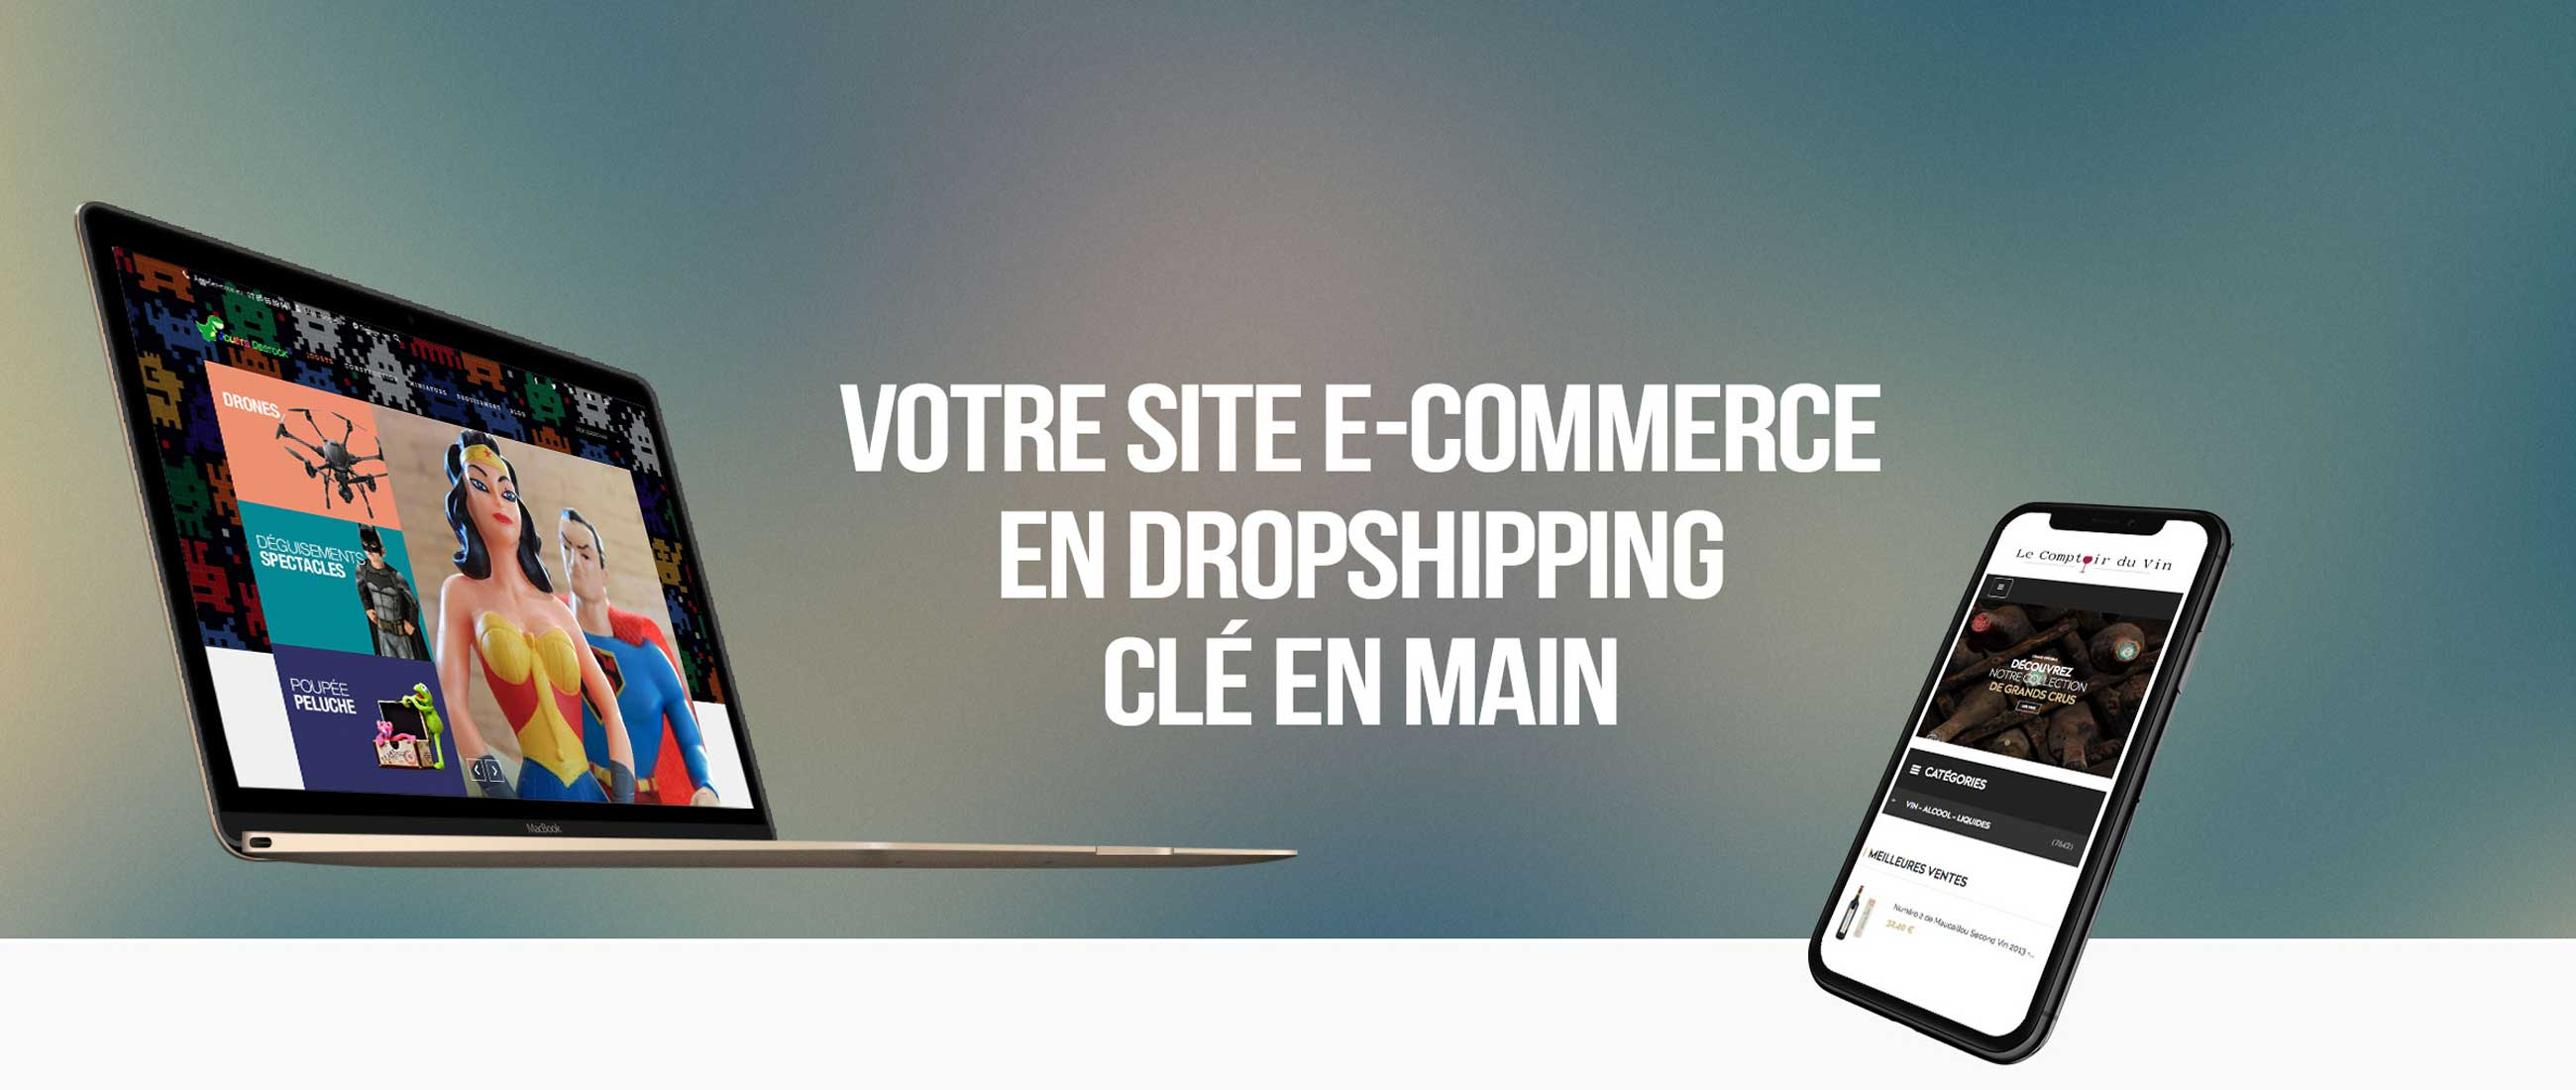 ecommerce-dropshipping